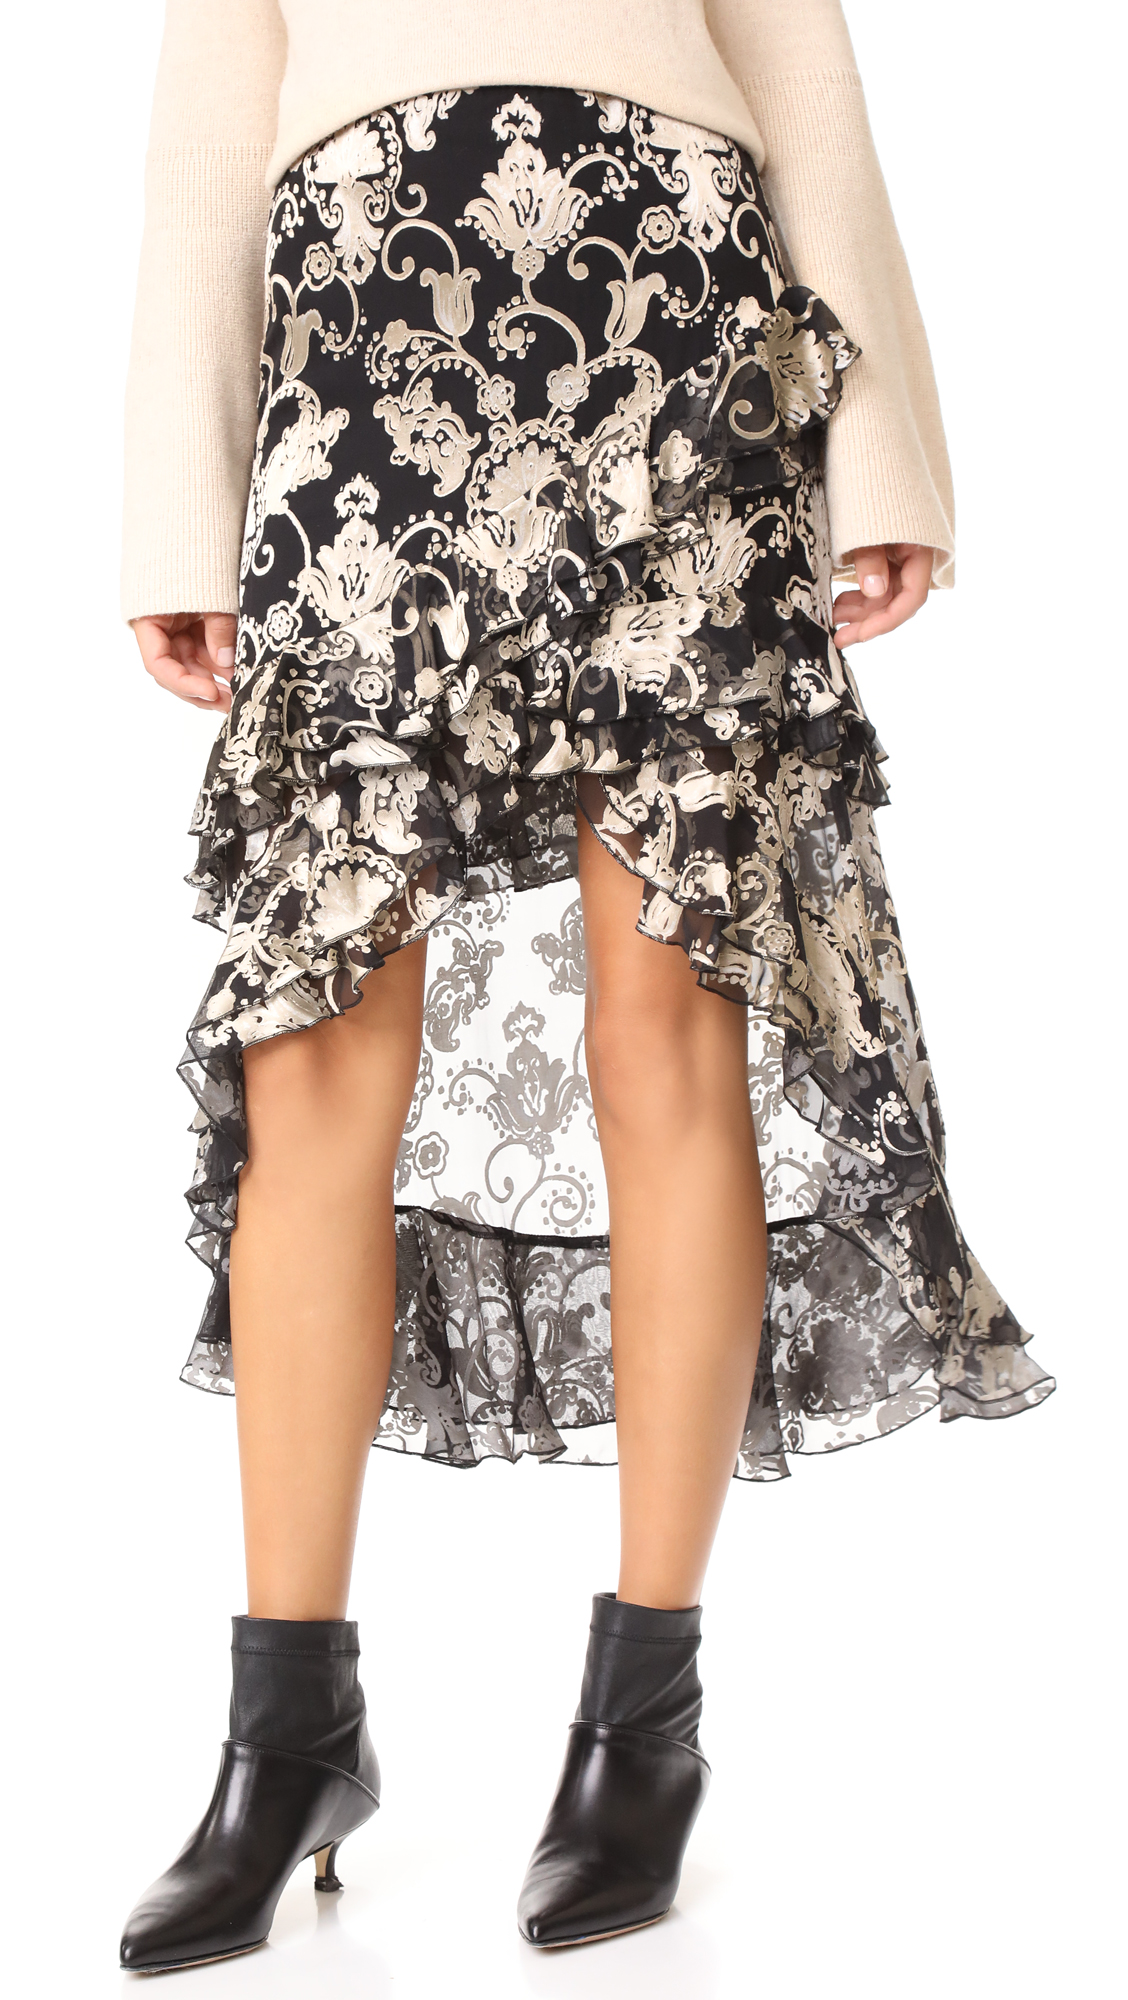 alice + olivia Sasha Skirt - Black/White